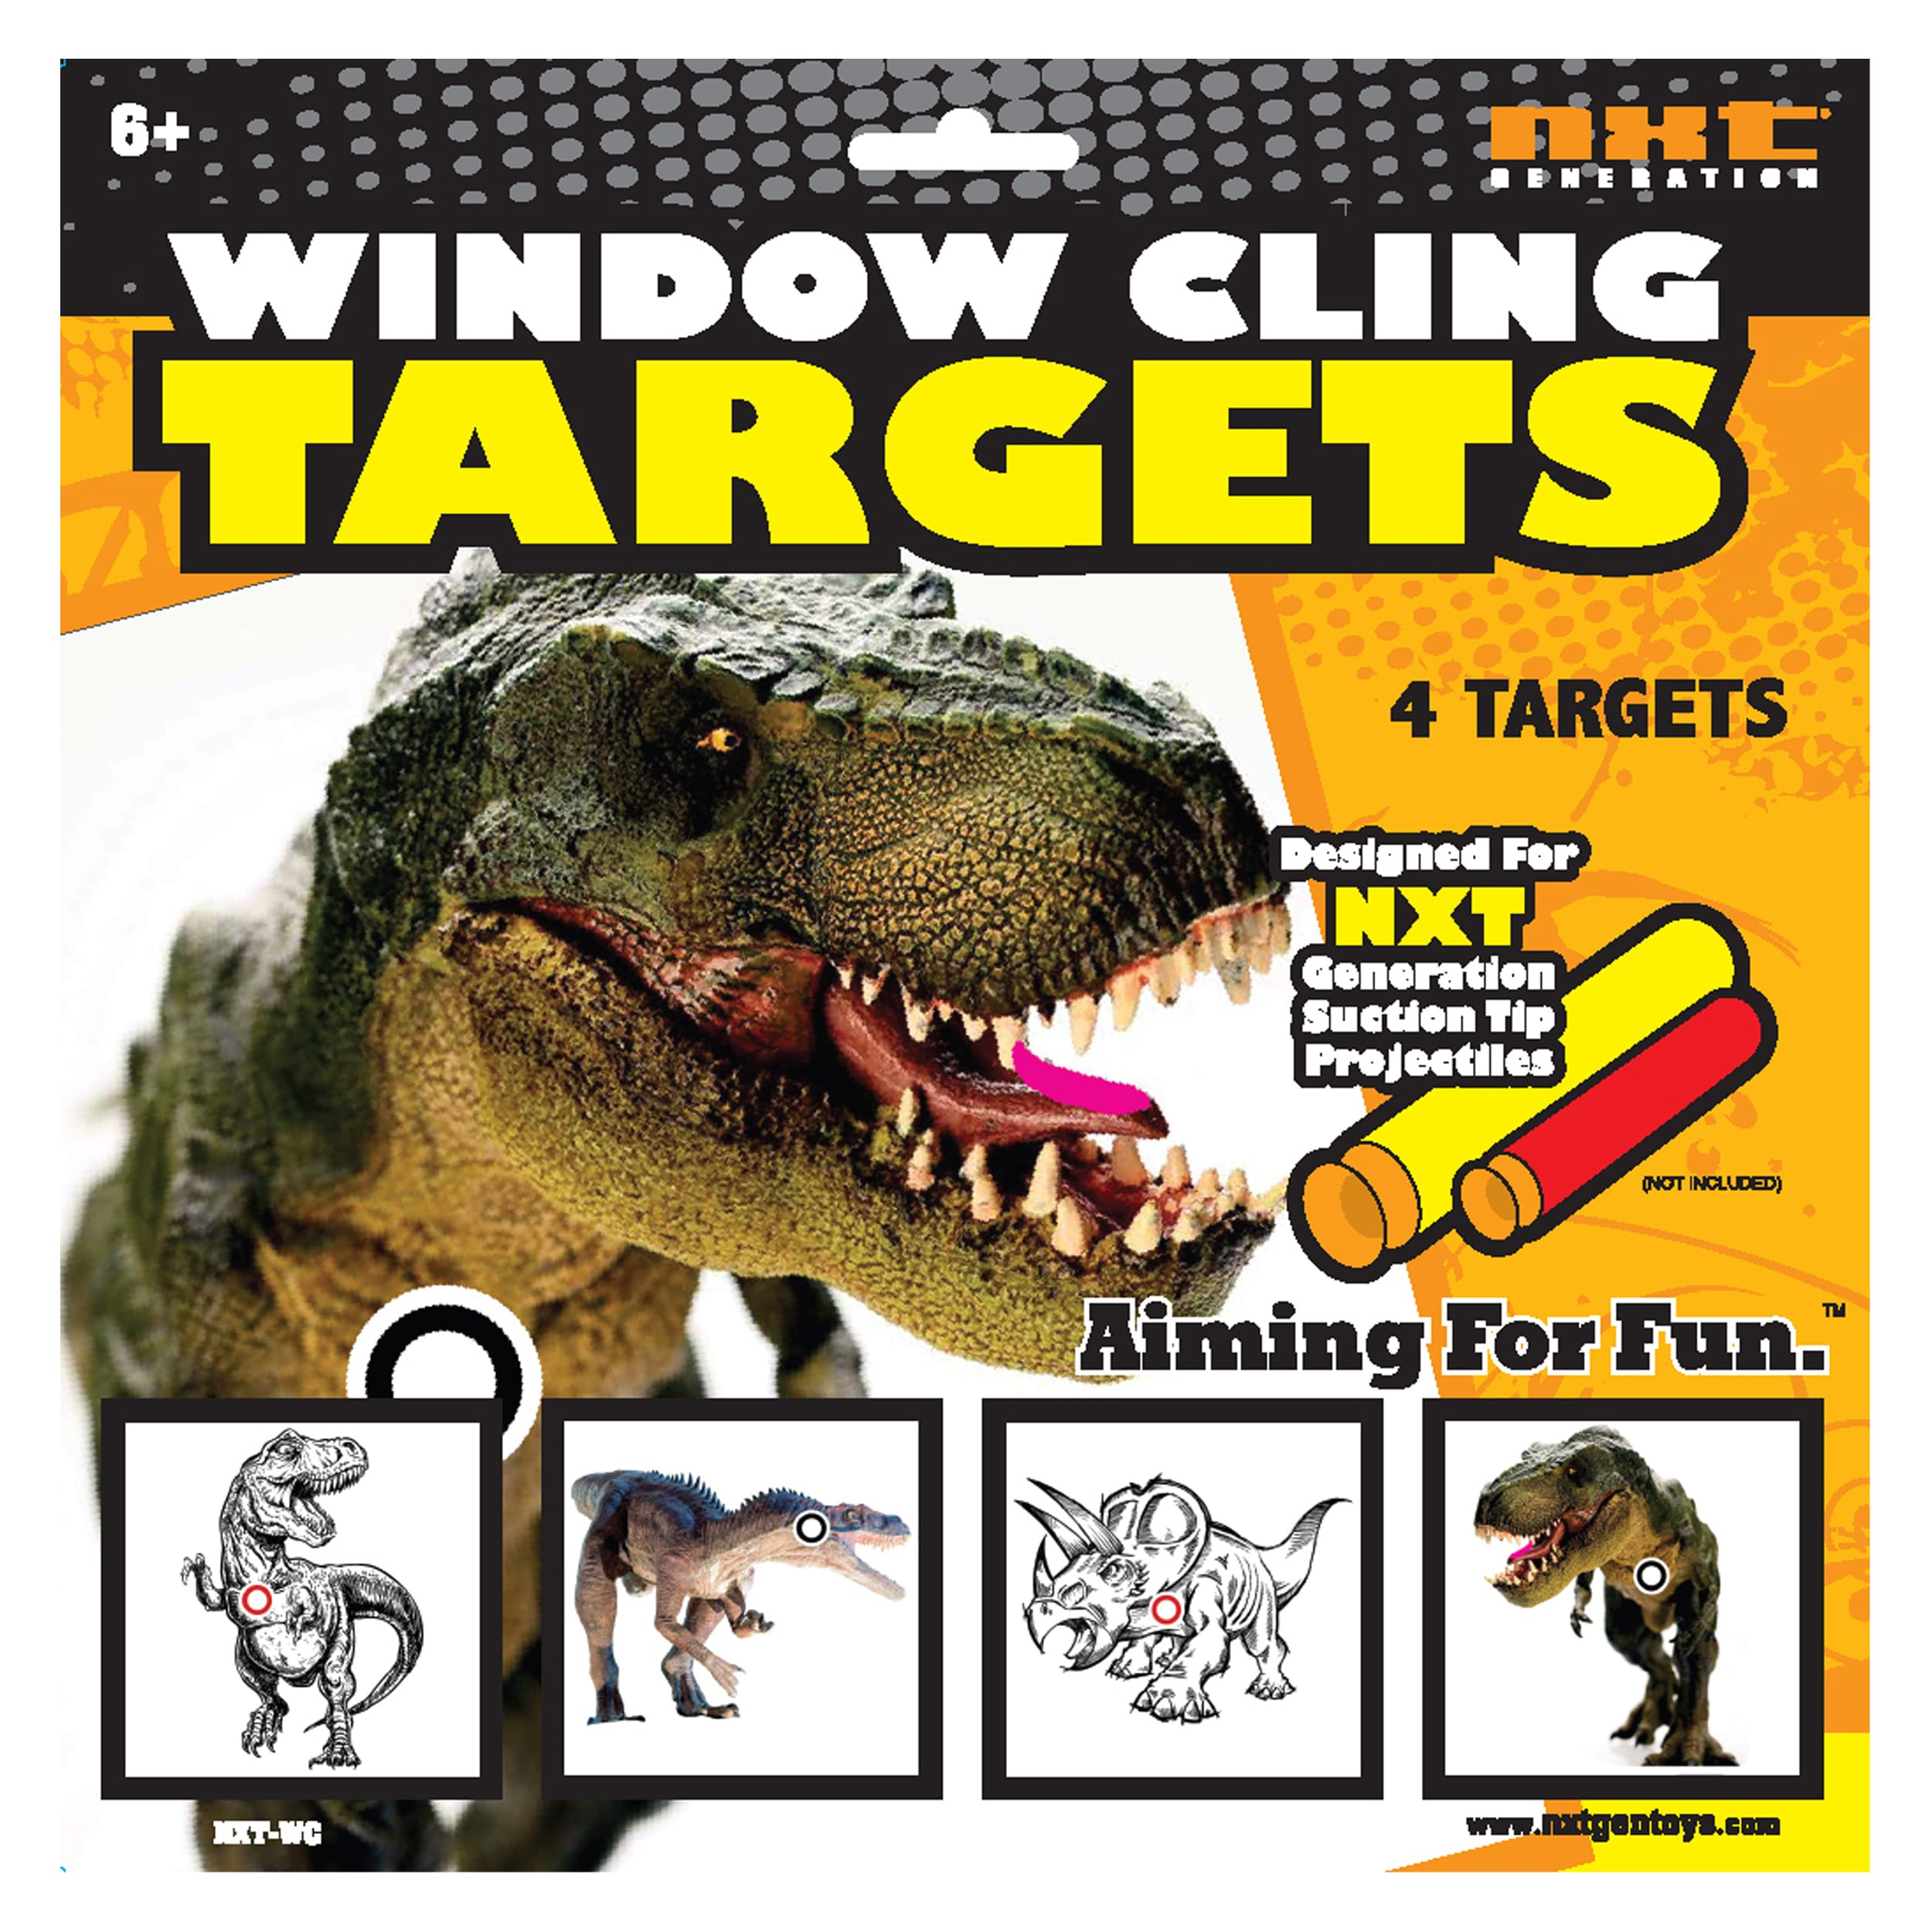 NXT Generation Dino Window Cling Target (1)